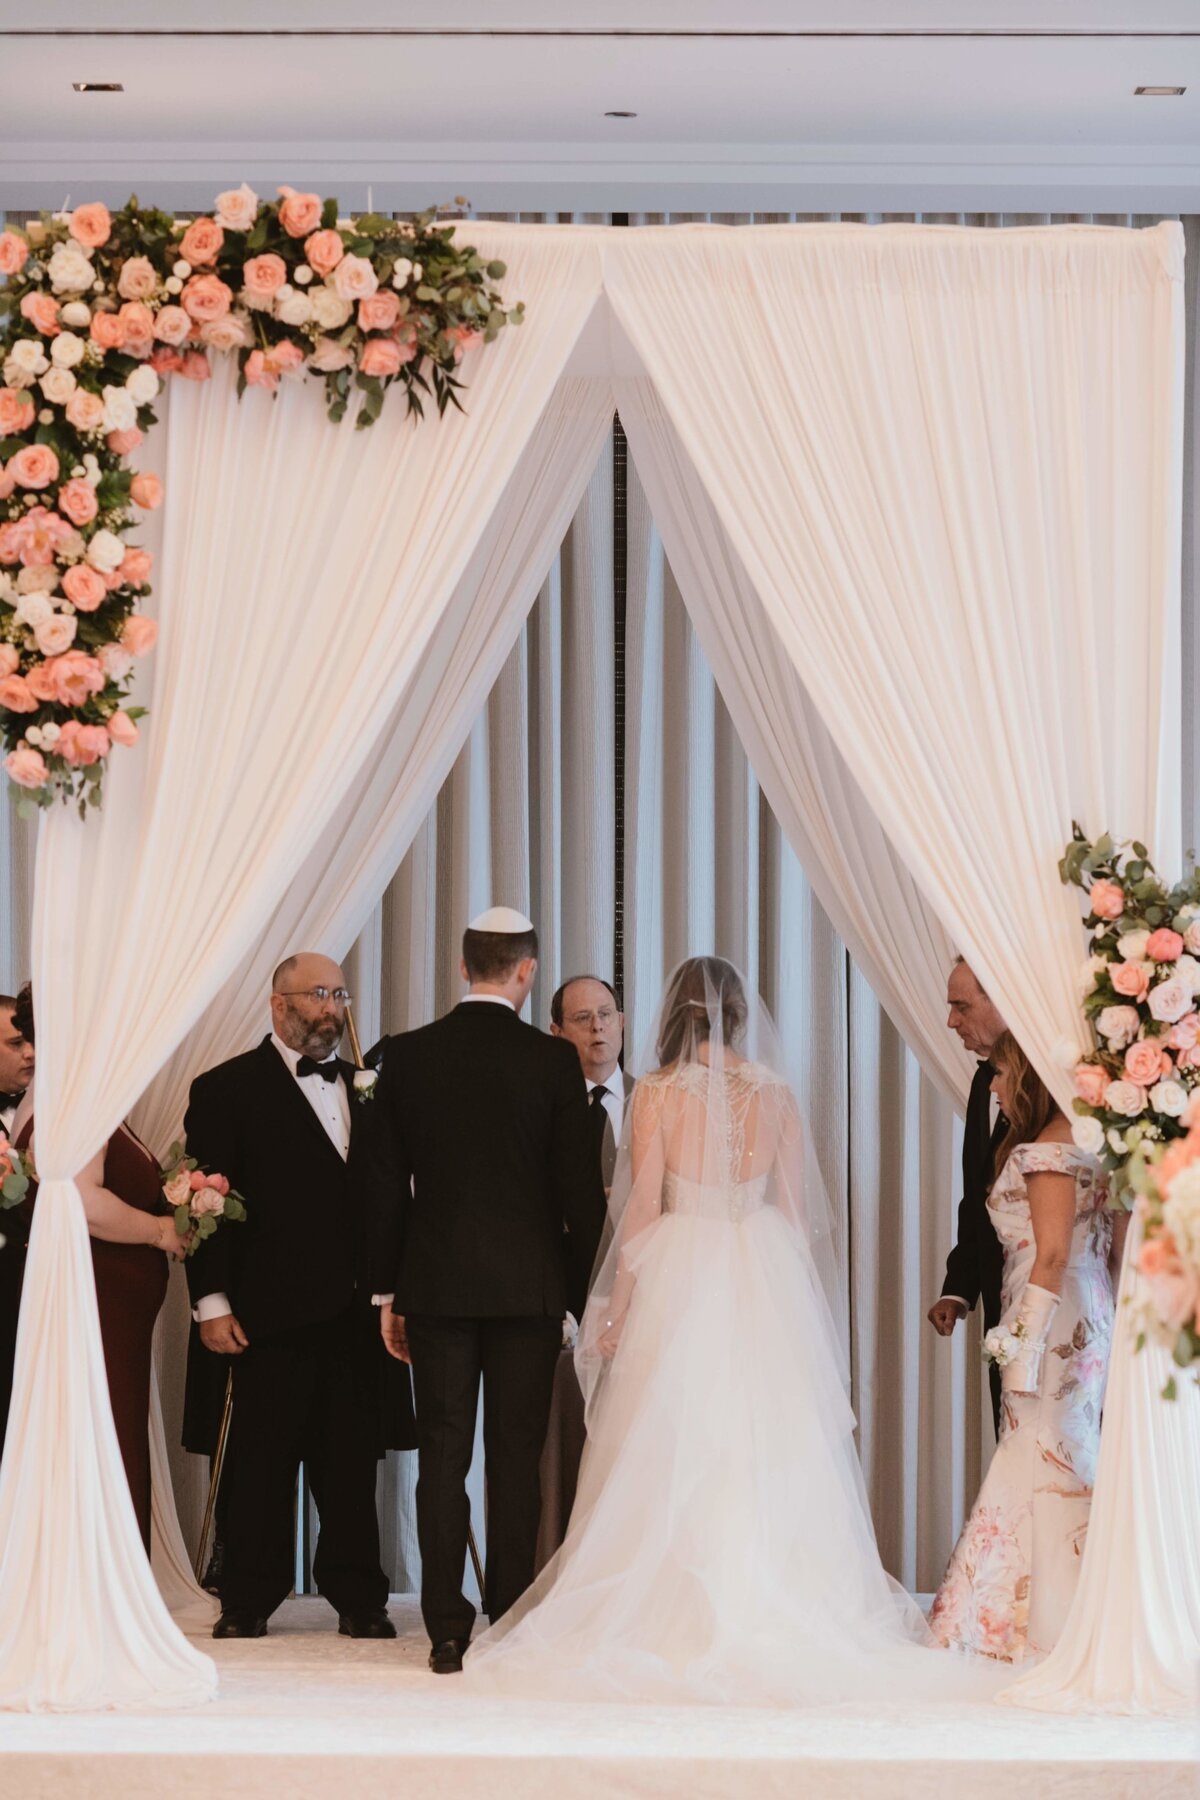 Chuppah with bride and groom